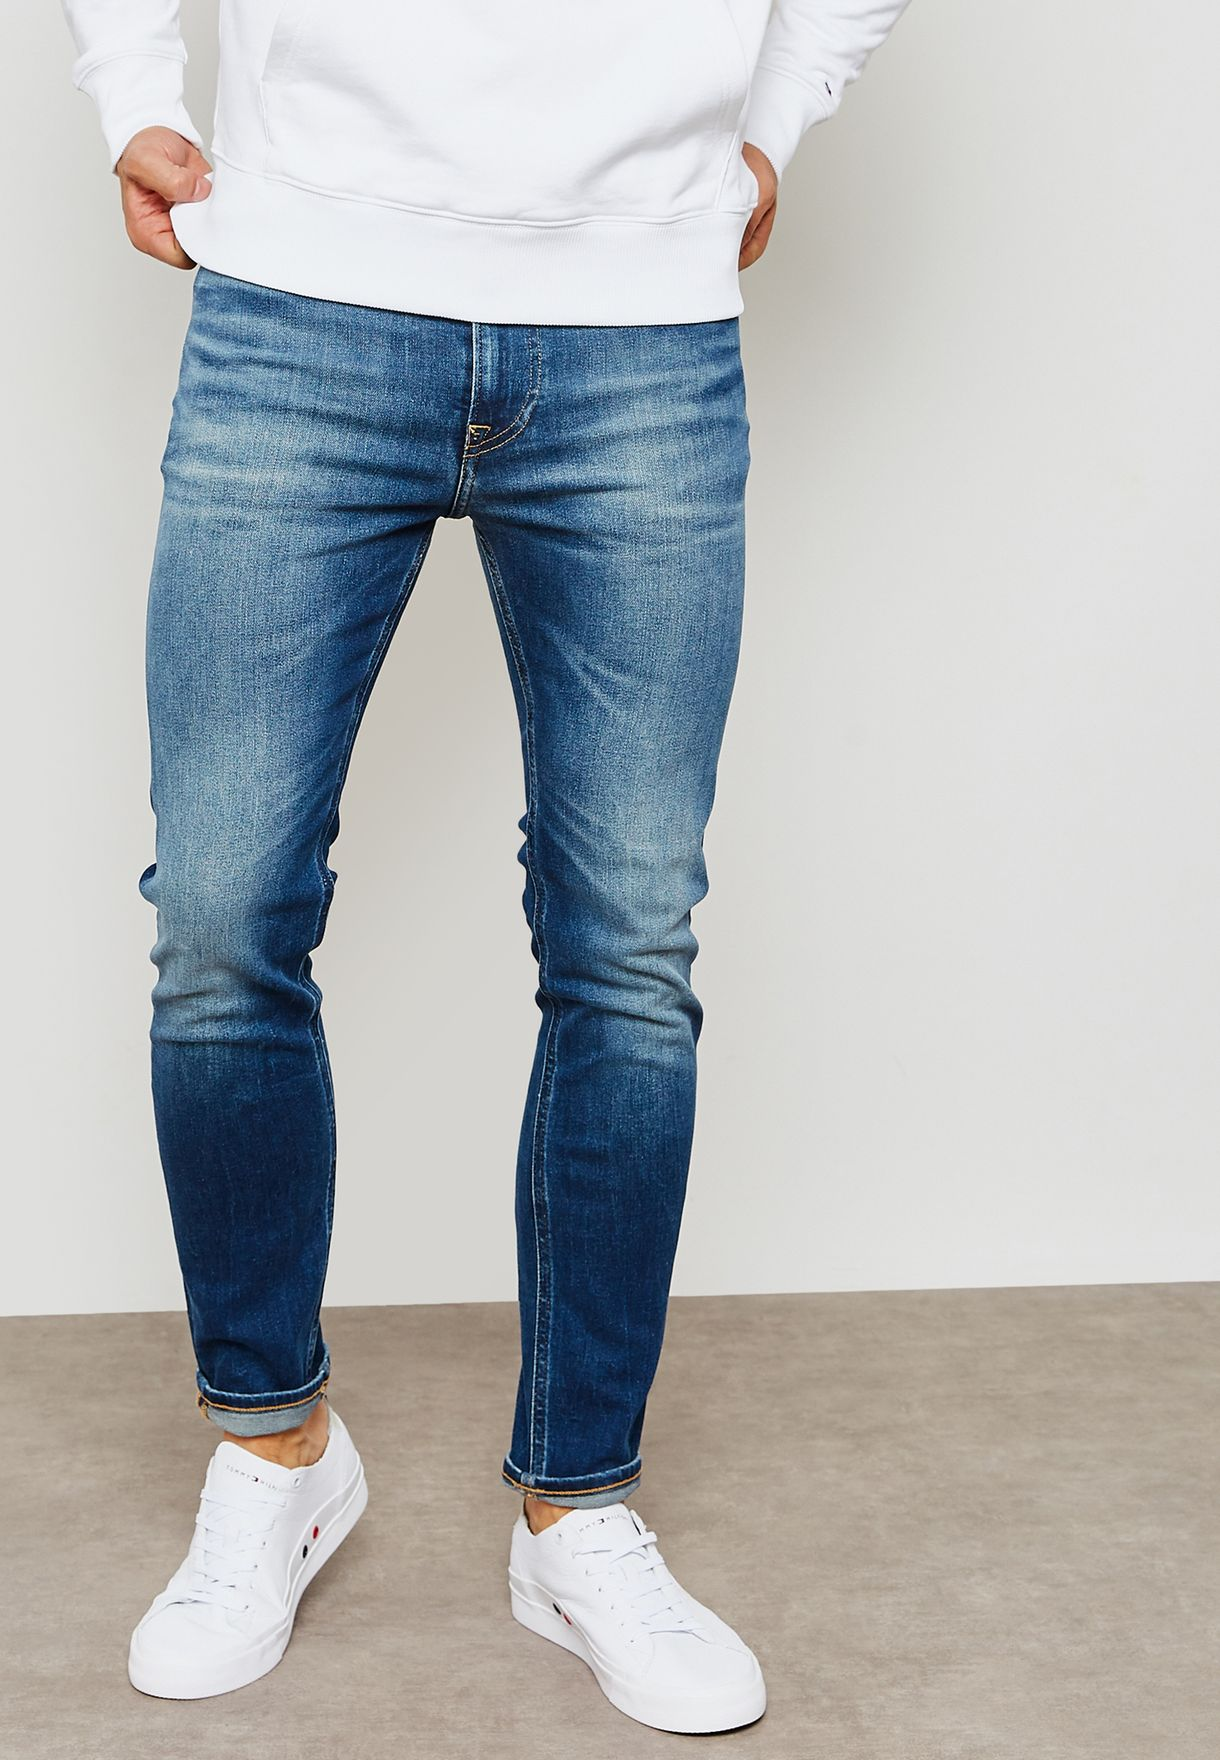 52394e6a5 Shop Tommy Hilfiger blue Simon Skinny Fit Jeans DM0DM04635 for Men ...